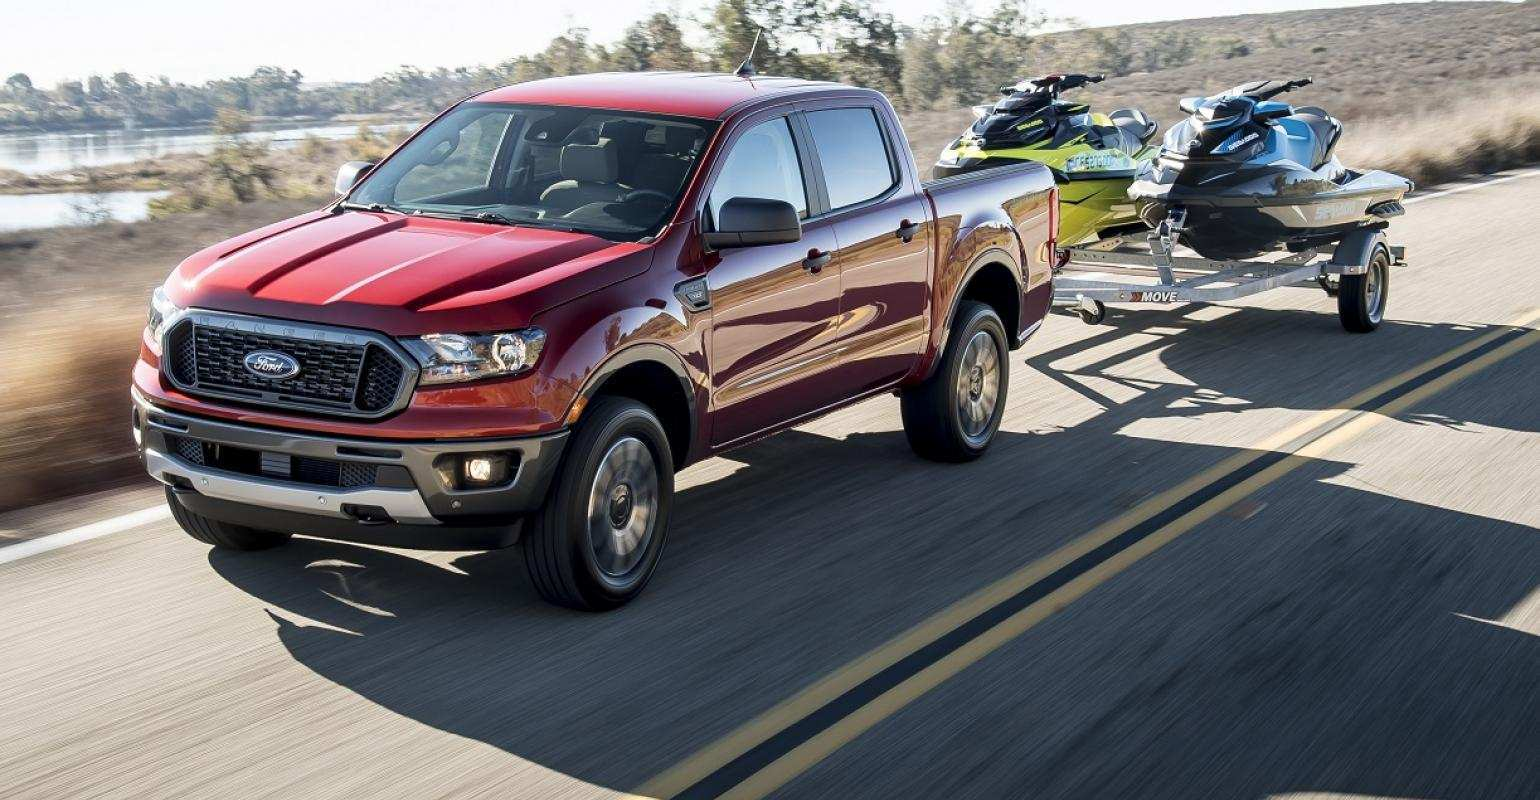 74 New 2019 2 Door Ford Ranger Exterior And Interior